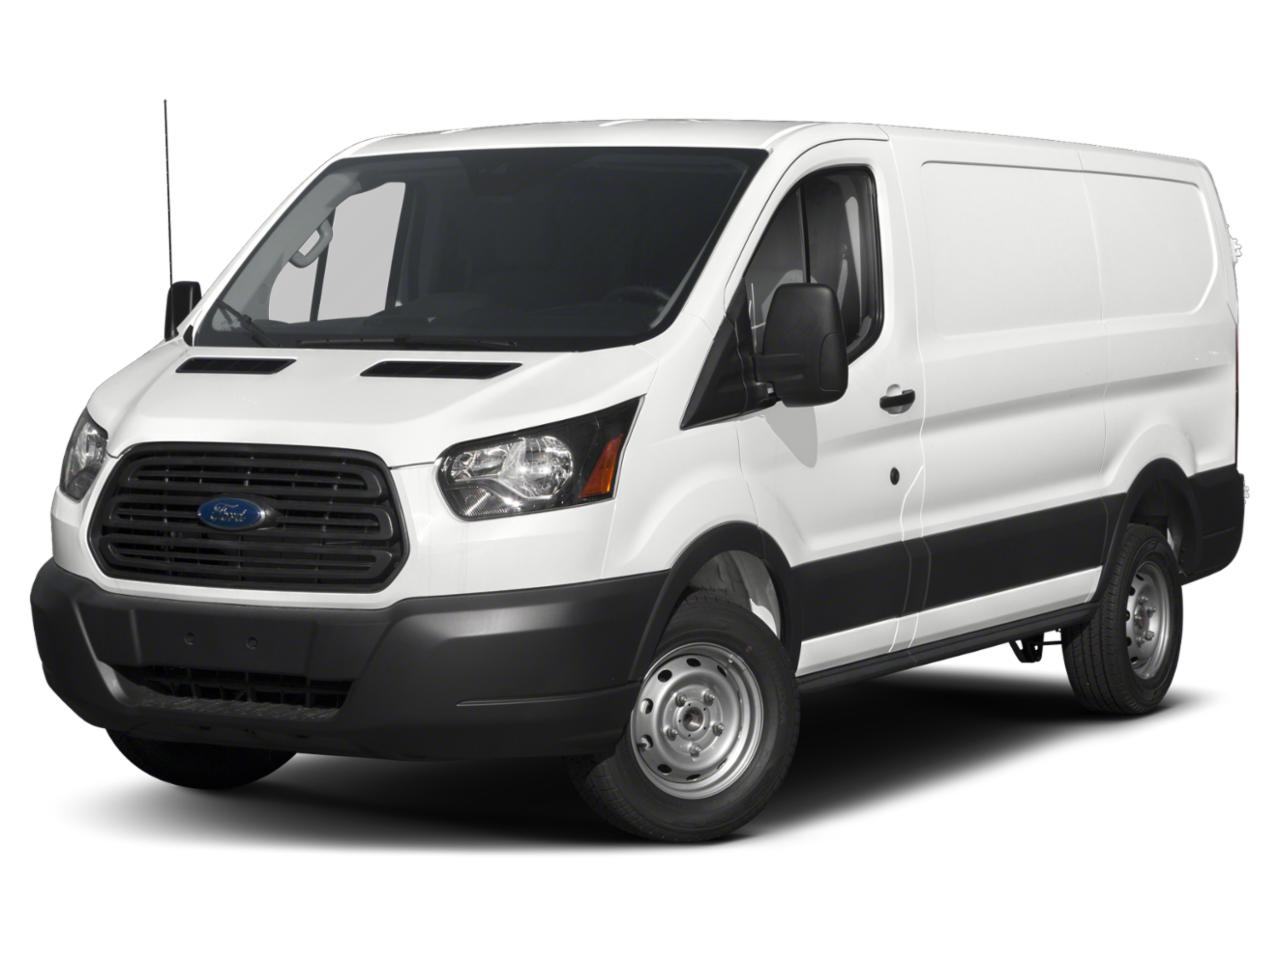 2019 Ford Transit Van Vehicle Photo in Annapolis, MD 21401